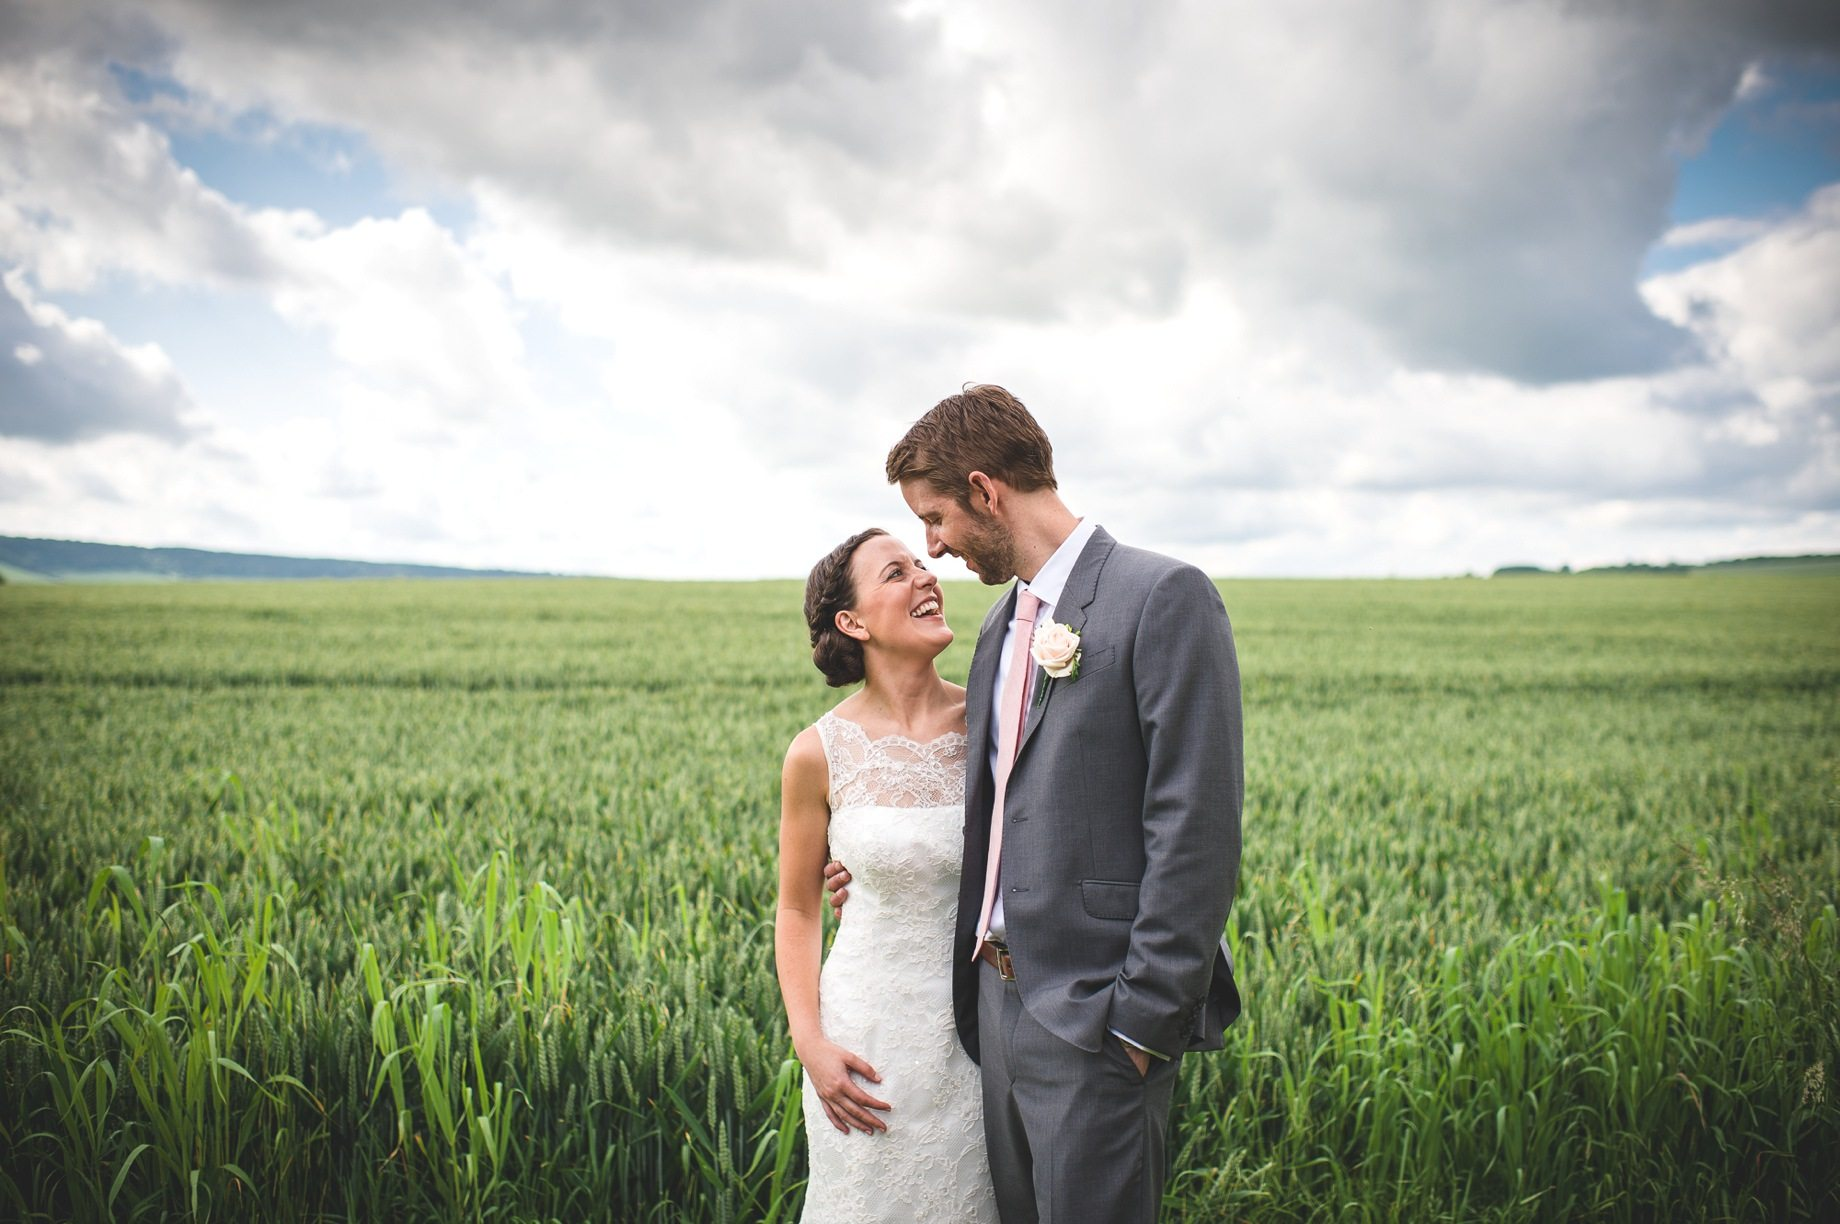 25Best Wedding Photography Guy Collier Part 2